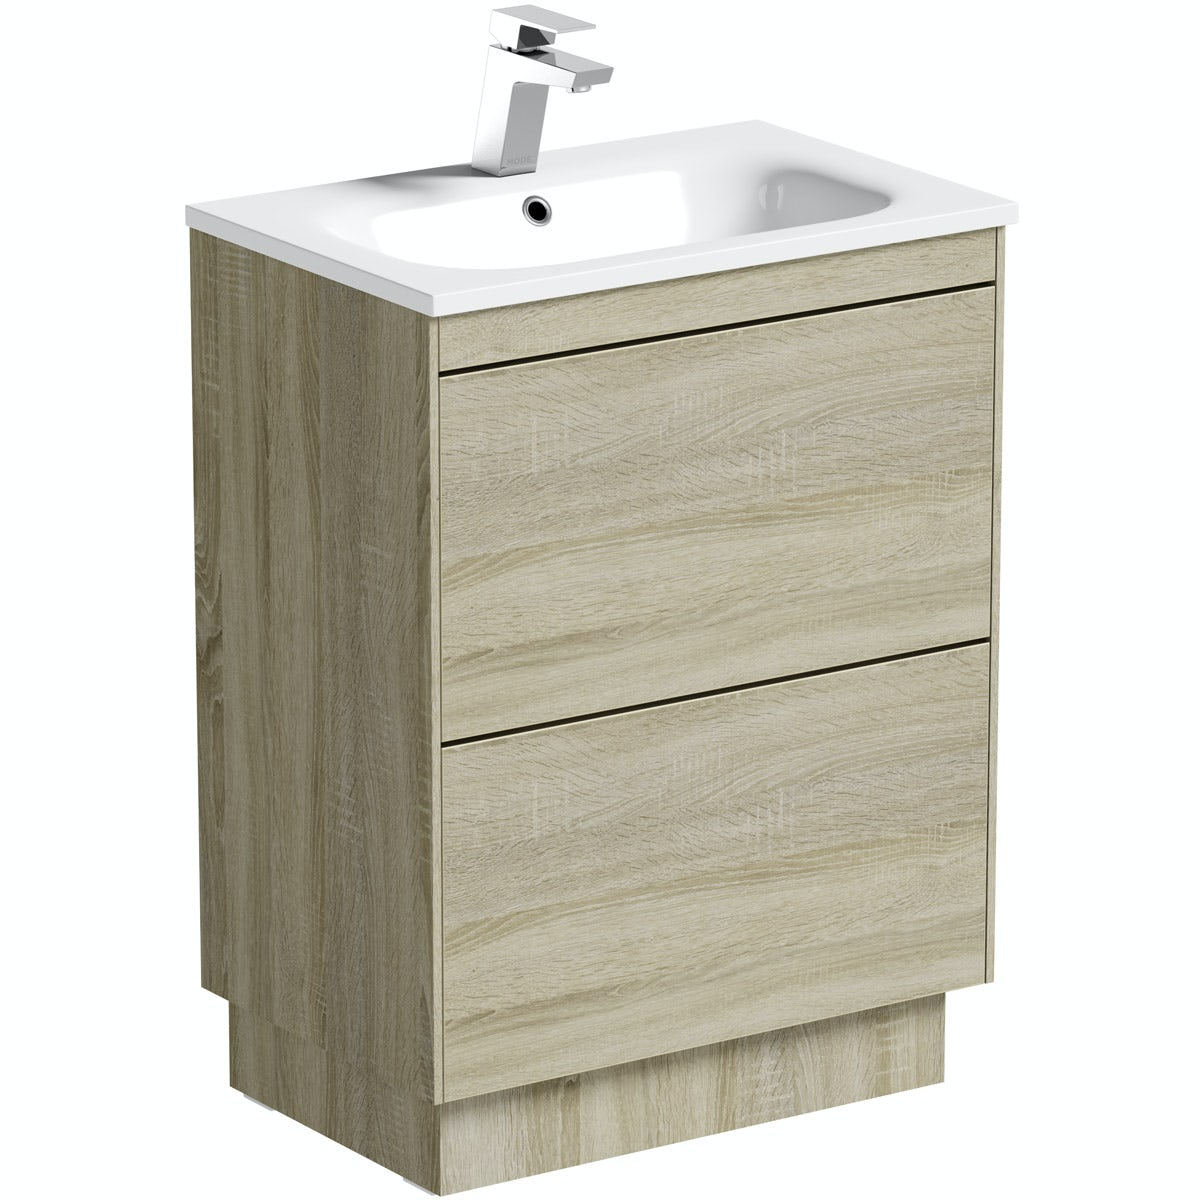 Mode Austin oak vanity unit and stone basin 600mm